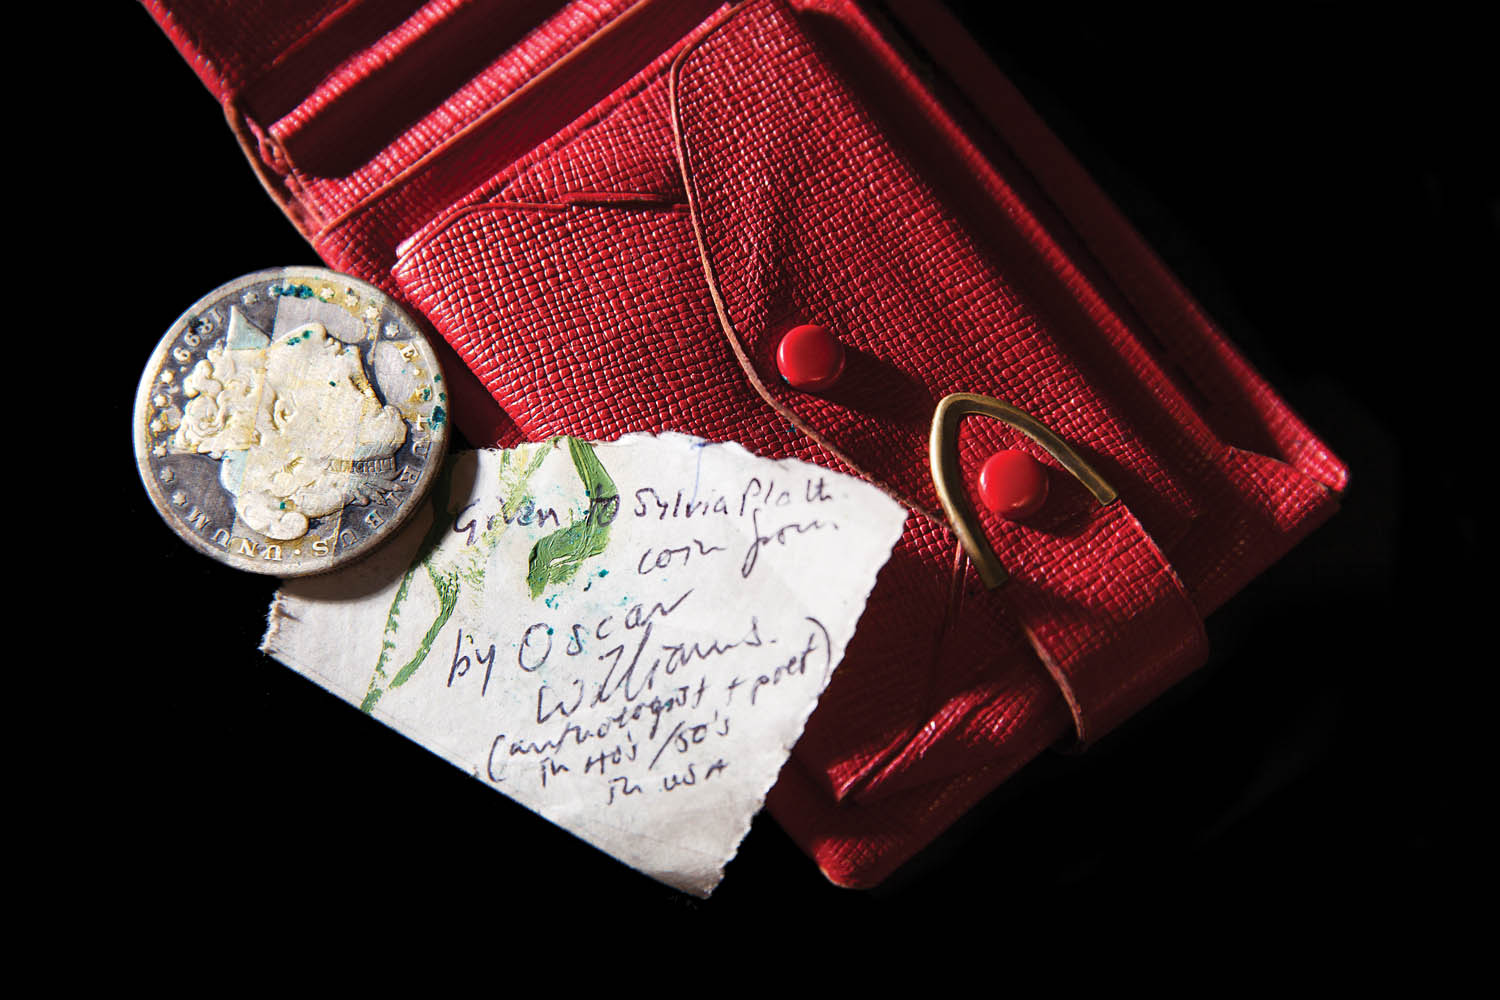 Sylvia Plath's red wallet with American Liberty silver dollar from poet friend Oscar Williams in coin purse. Photographed by Jo Emmerson